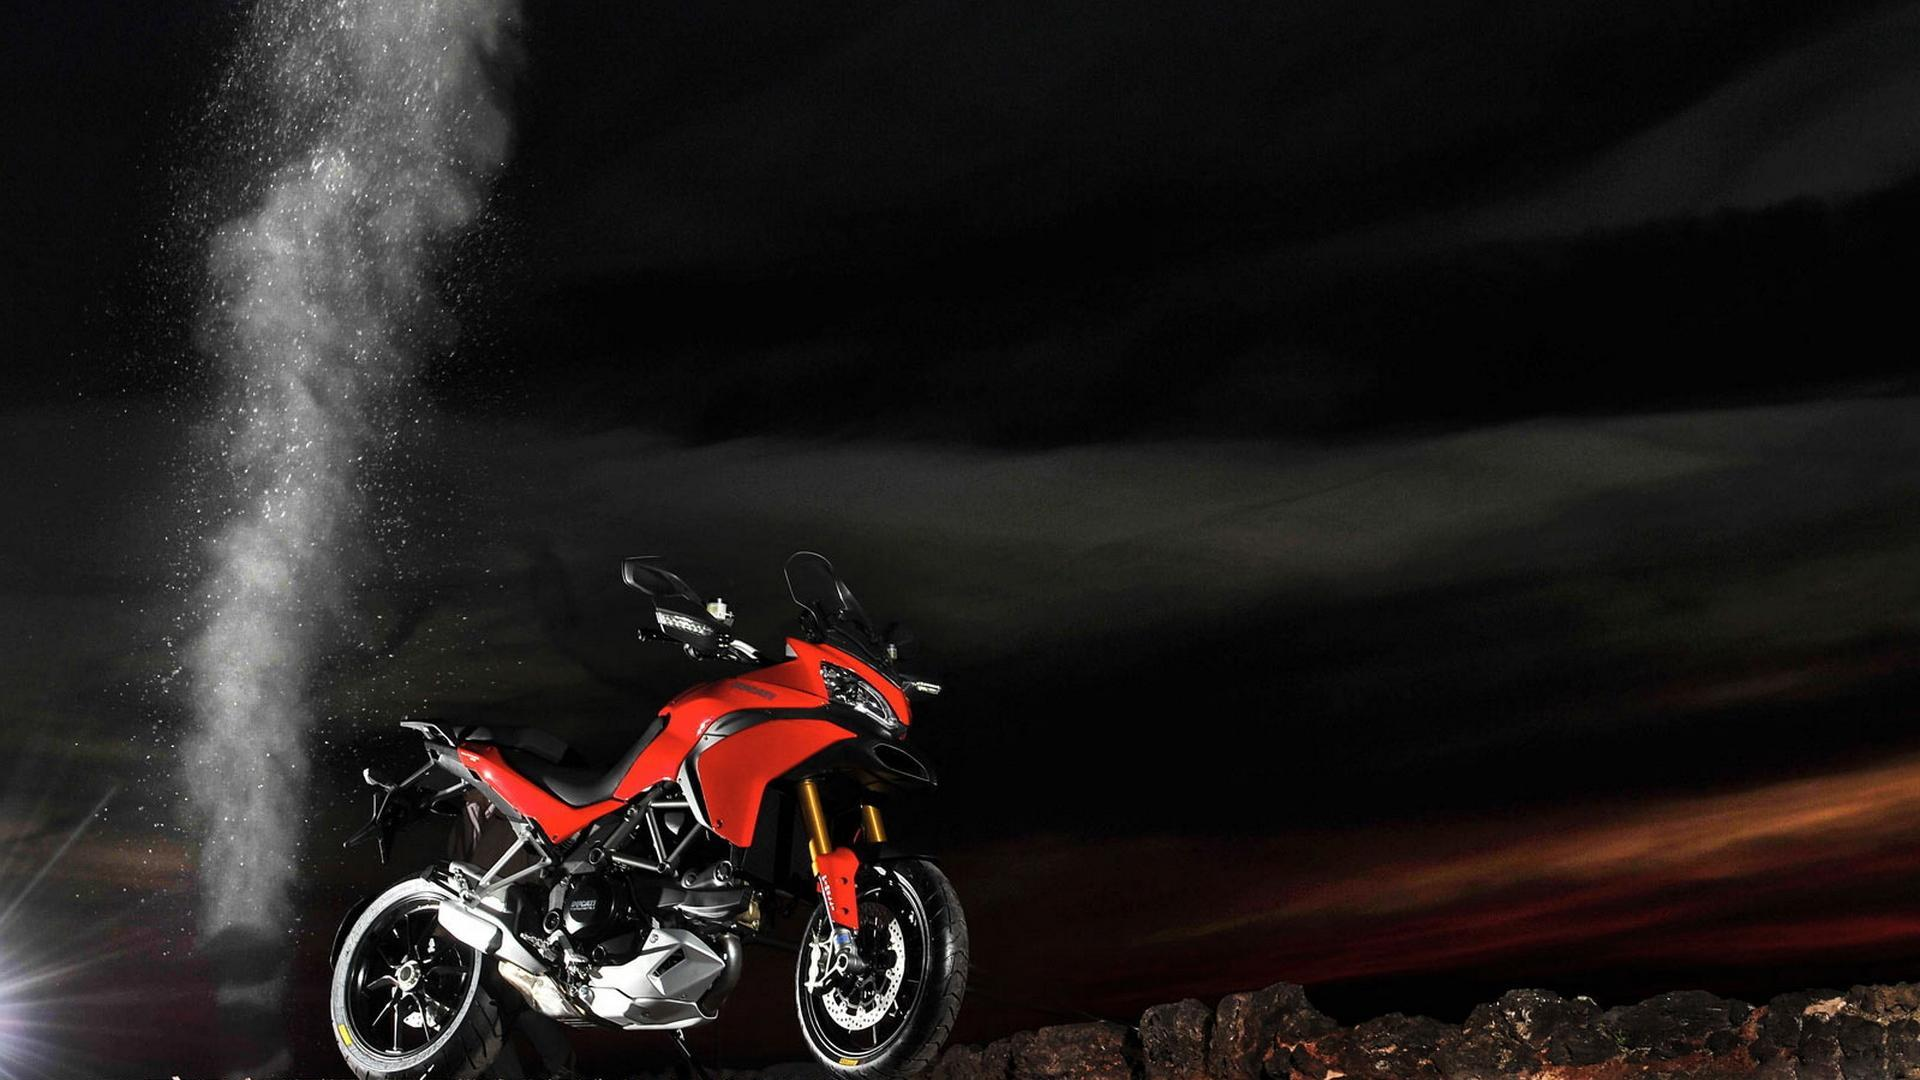 Hd Cool Motorcycle Background Widescreen And HD Wallpaper